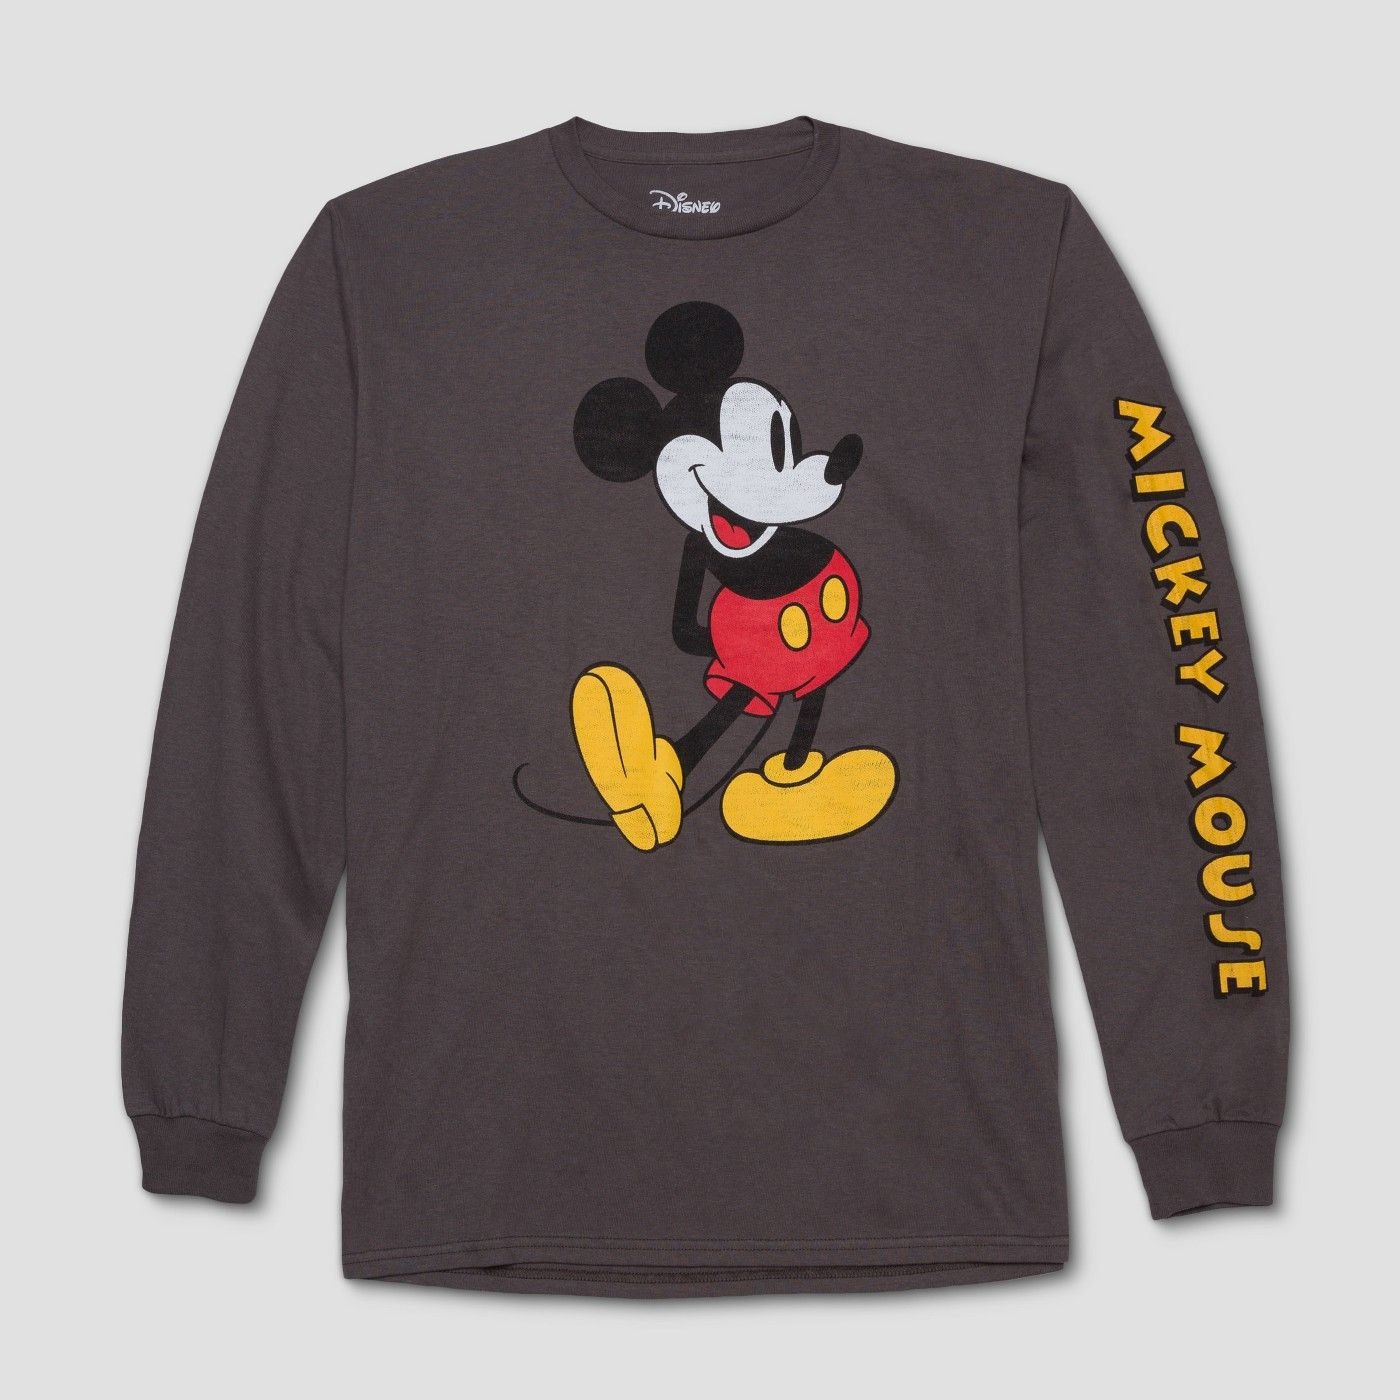 0d54b92a599 Men s Mickey Mouse